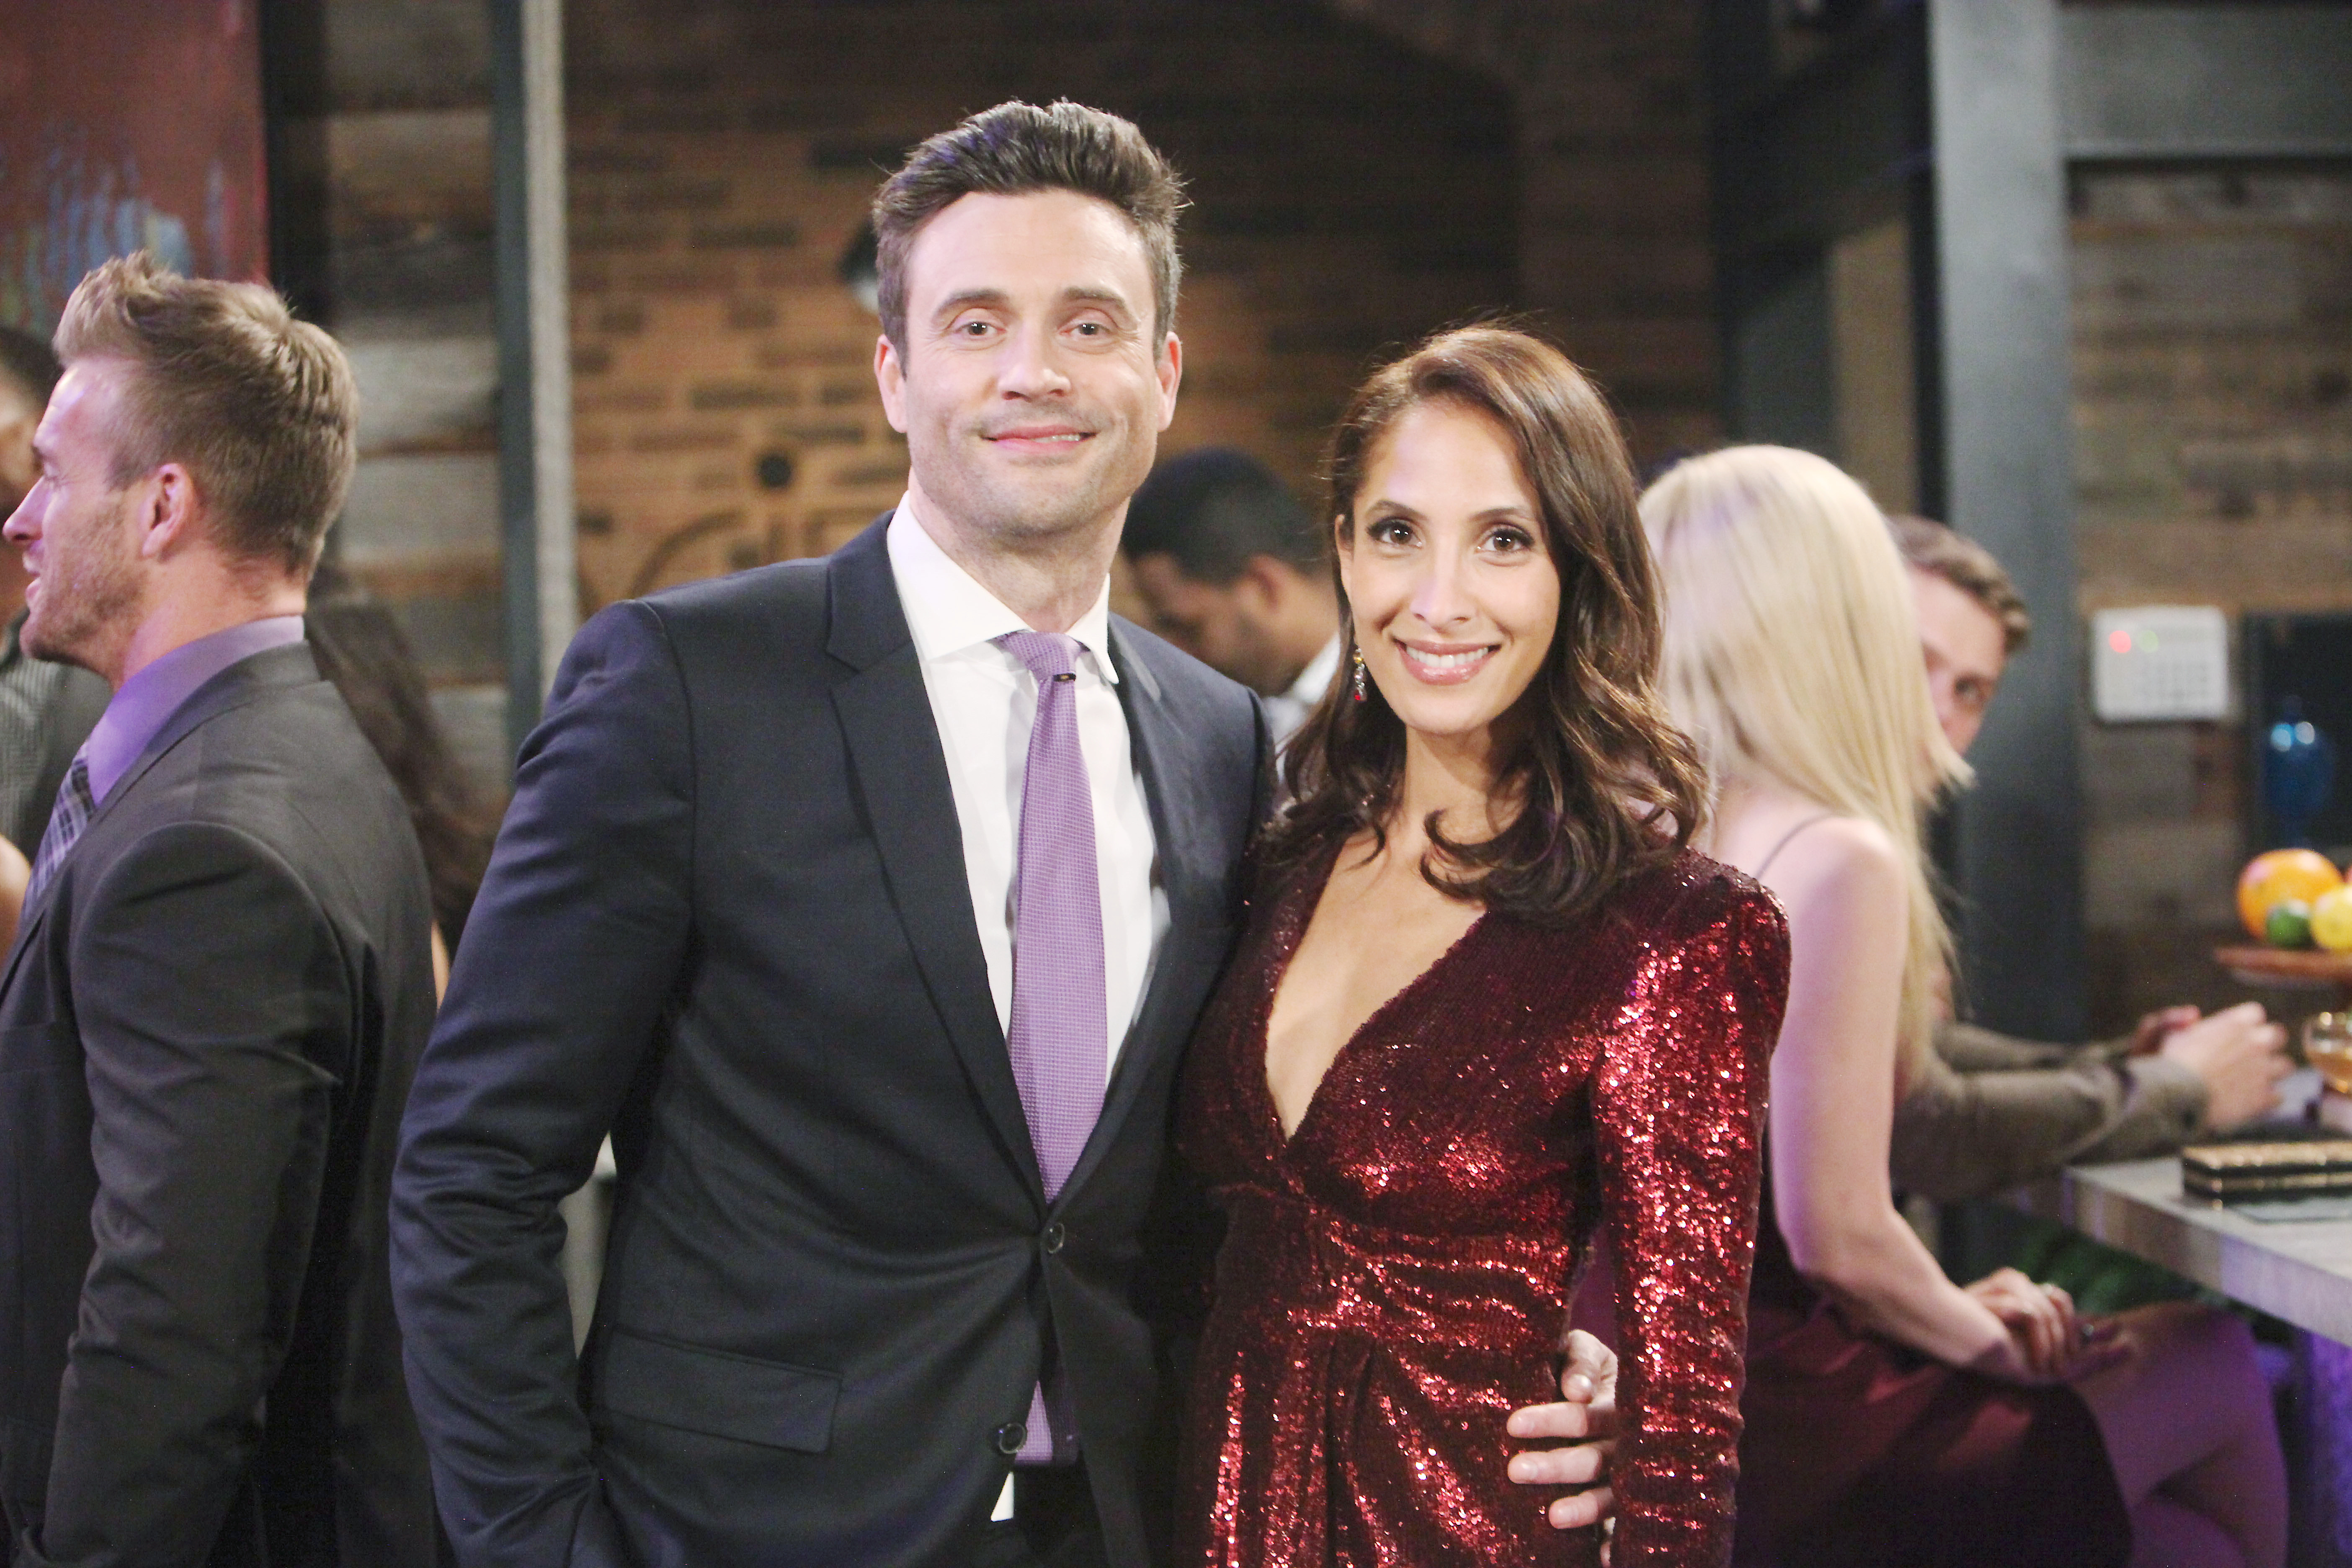 "Daniel Goddard, Christel Khalil""The Young and the Restless"" Set CBS television CityLos Angeles03/20/19© Howard Wise/jpistudios.com310-657-9661"